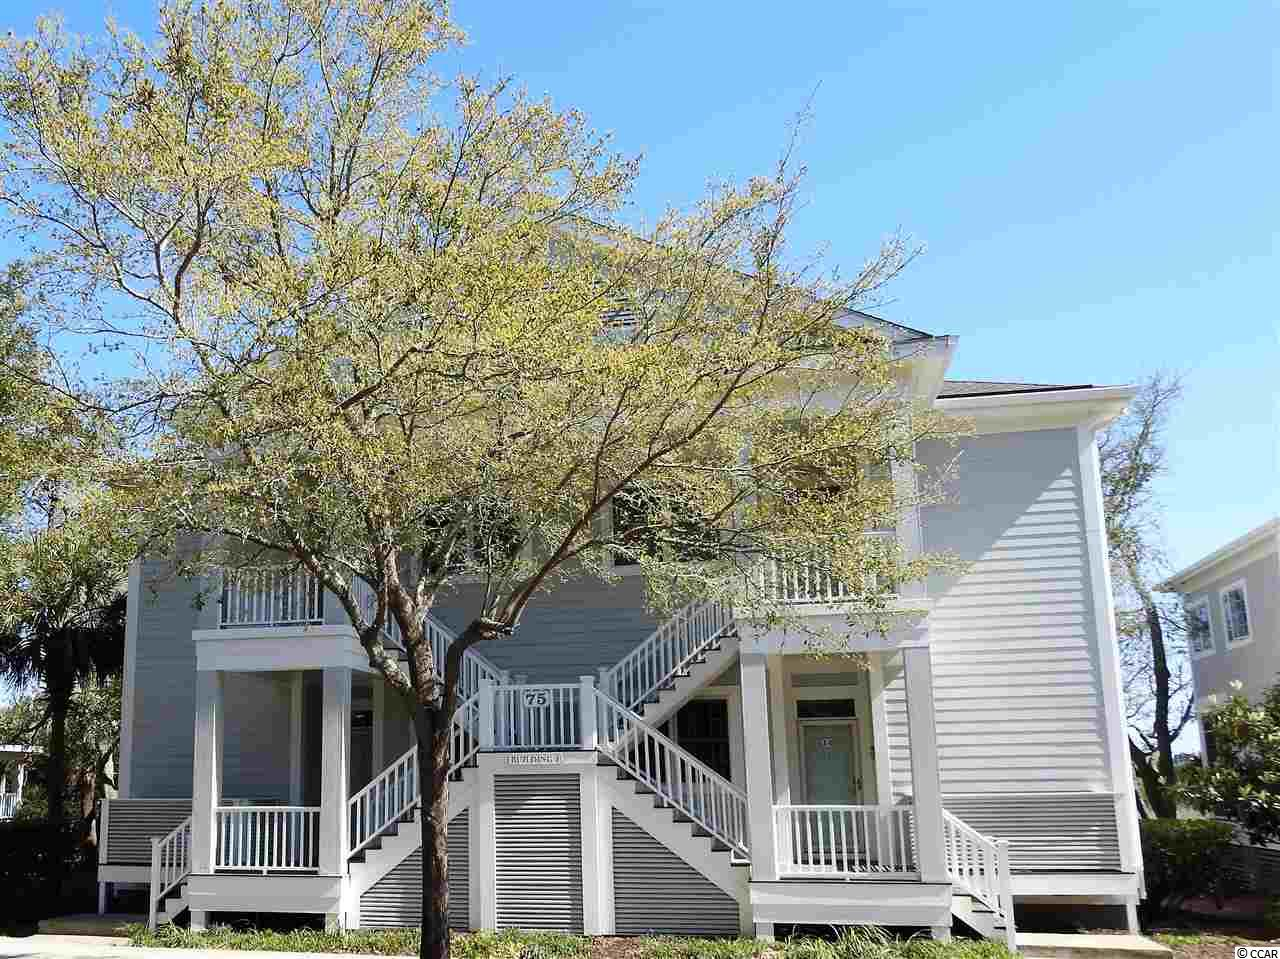 Condo / Townhome / Villa for Sale at 75 McKissick Drive 75 McKissick Drive Pawleys Island, South Carolina 29585 United States